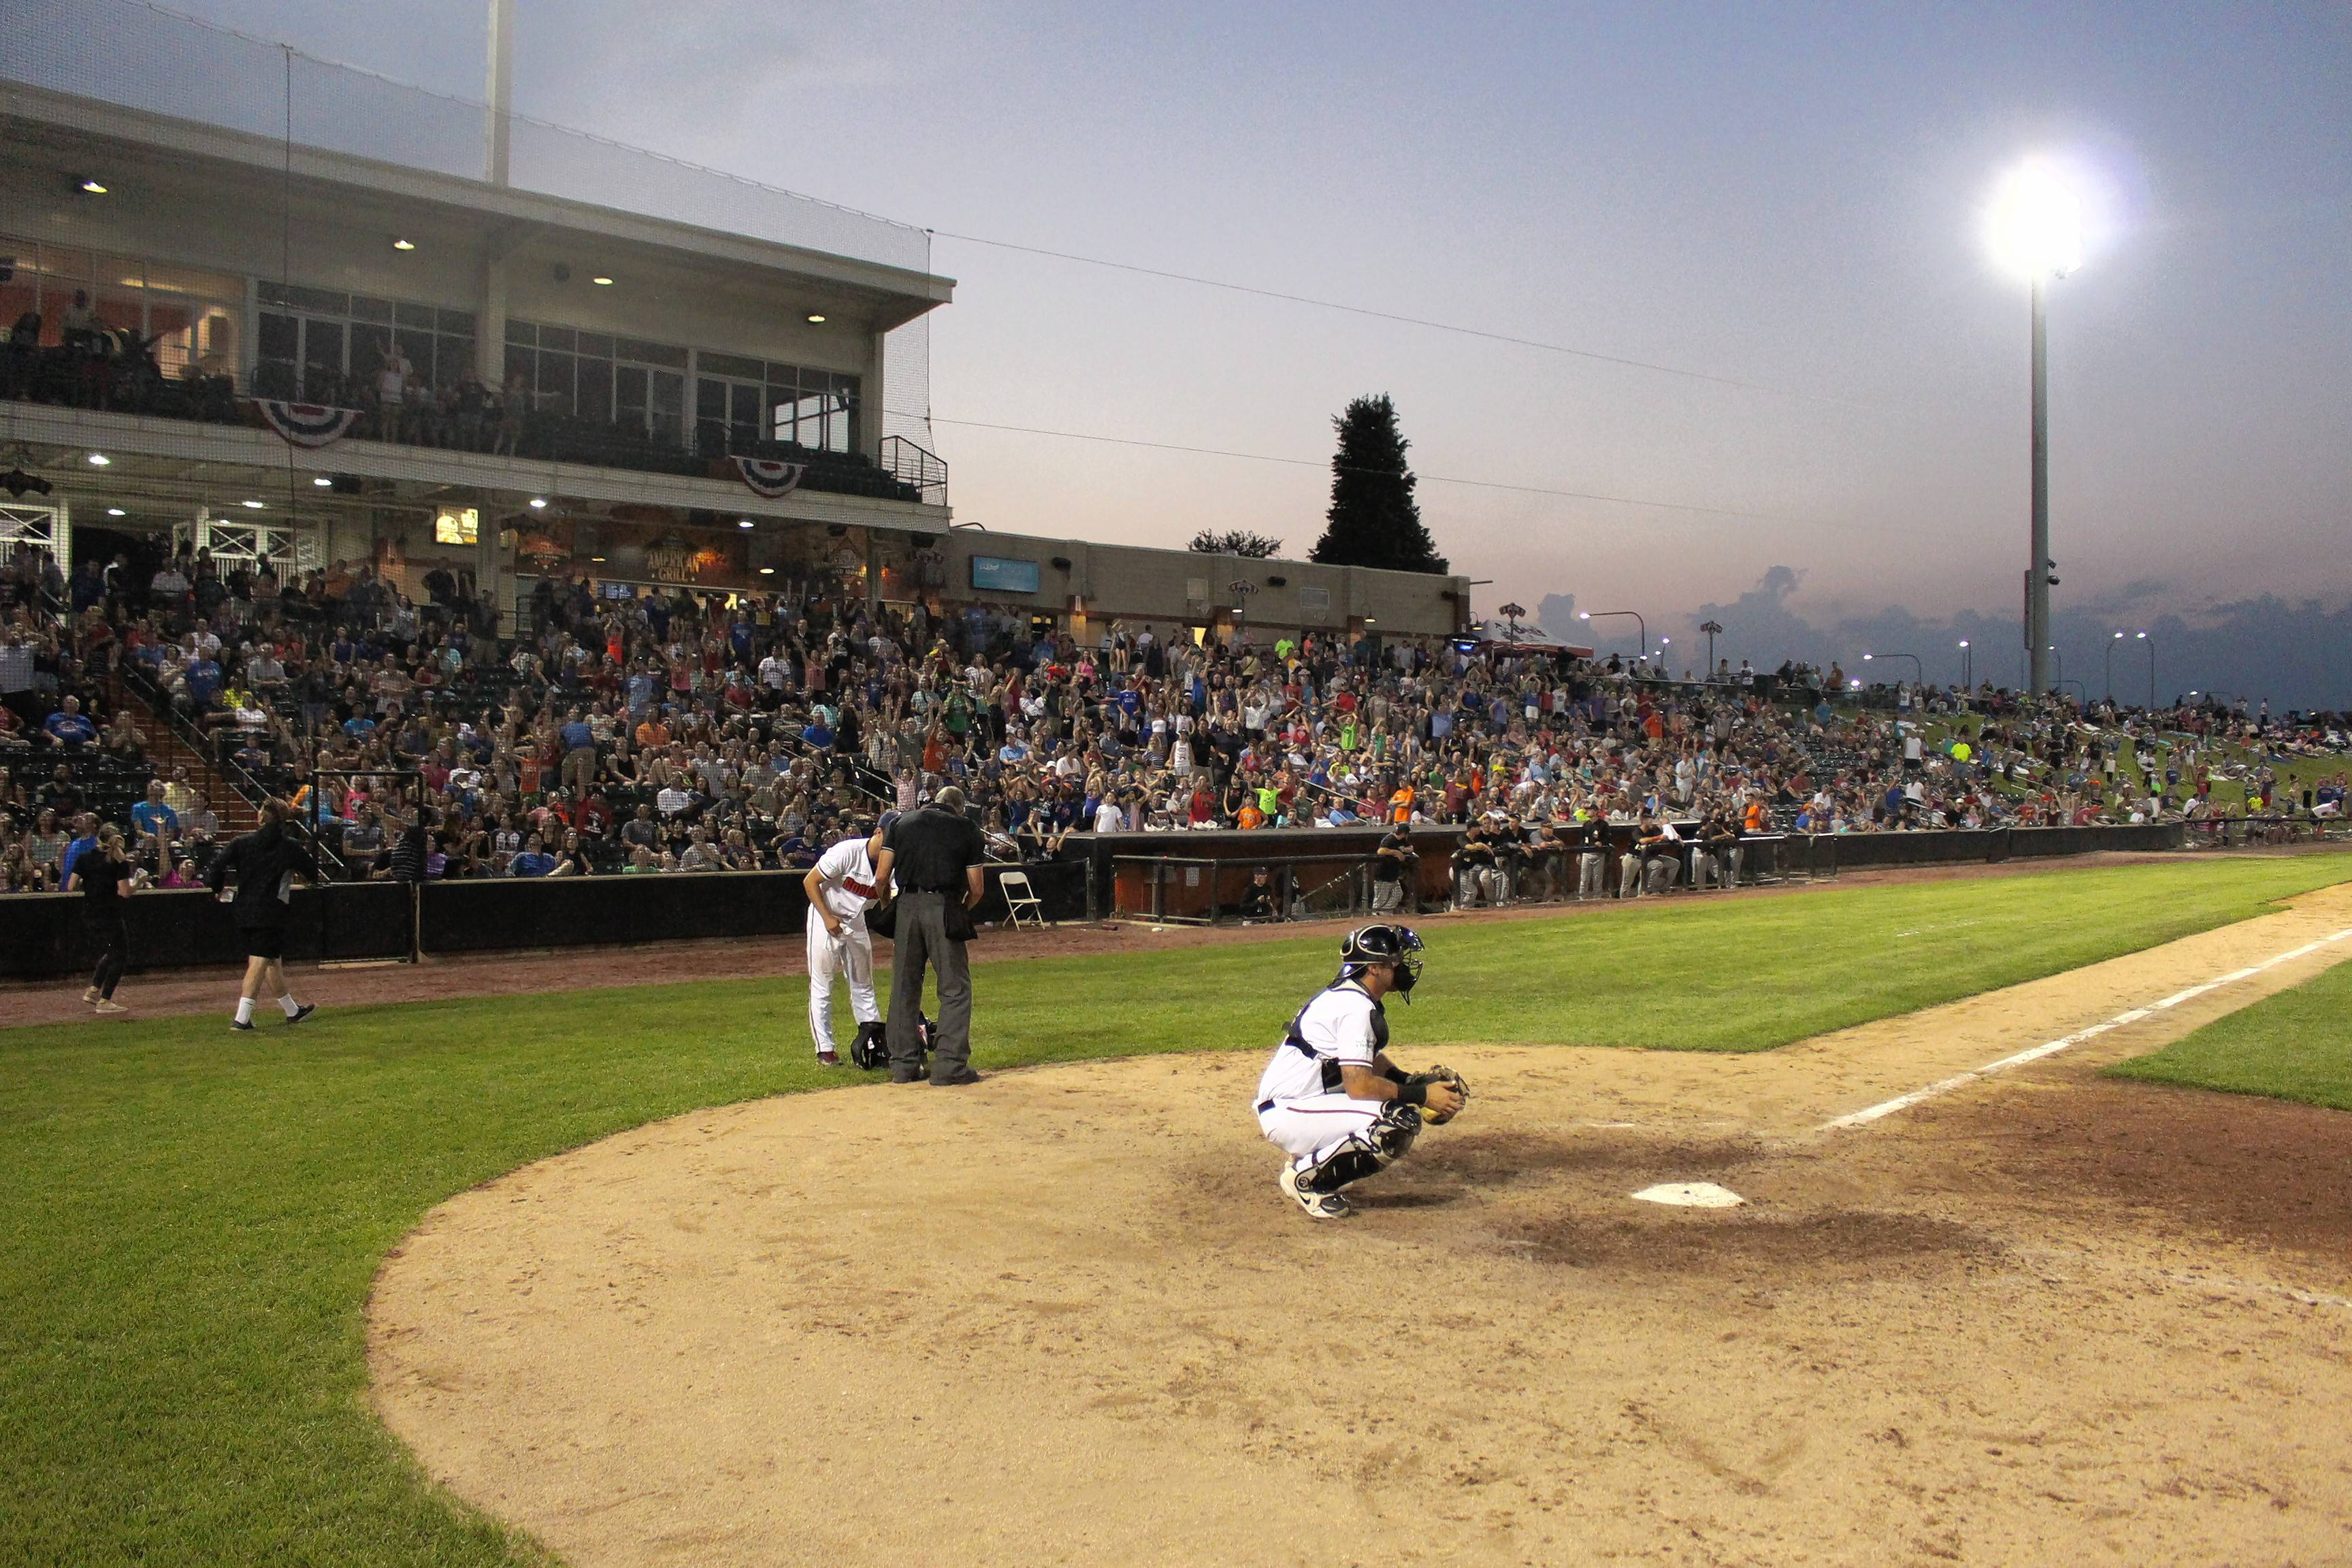 Several planned upgrades to the nearly 20-year-old Schaumburg Boomers Stadium suggested a year before the opening of Impact Field in Rosemont have been shelved after the Boomers outdrew the new club in attendance during 2018.